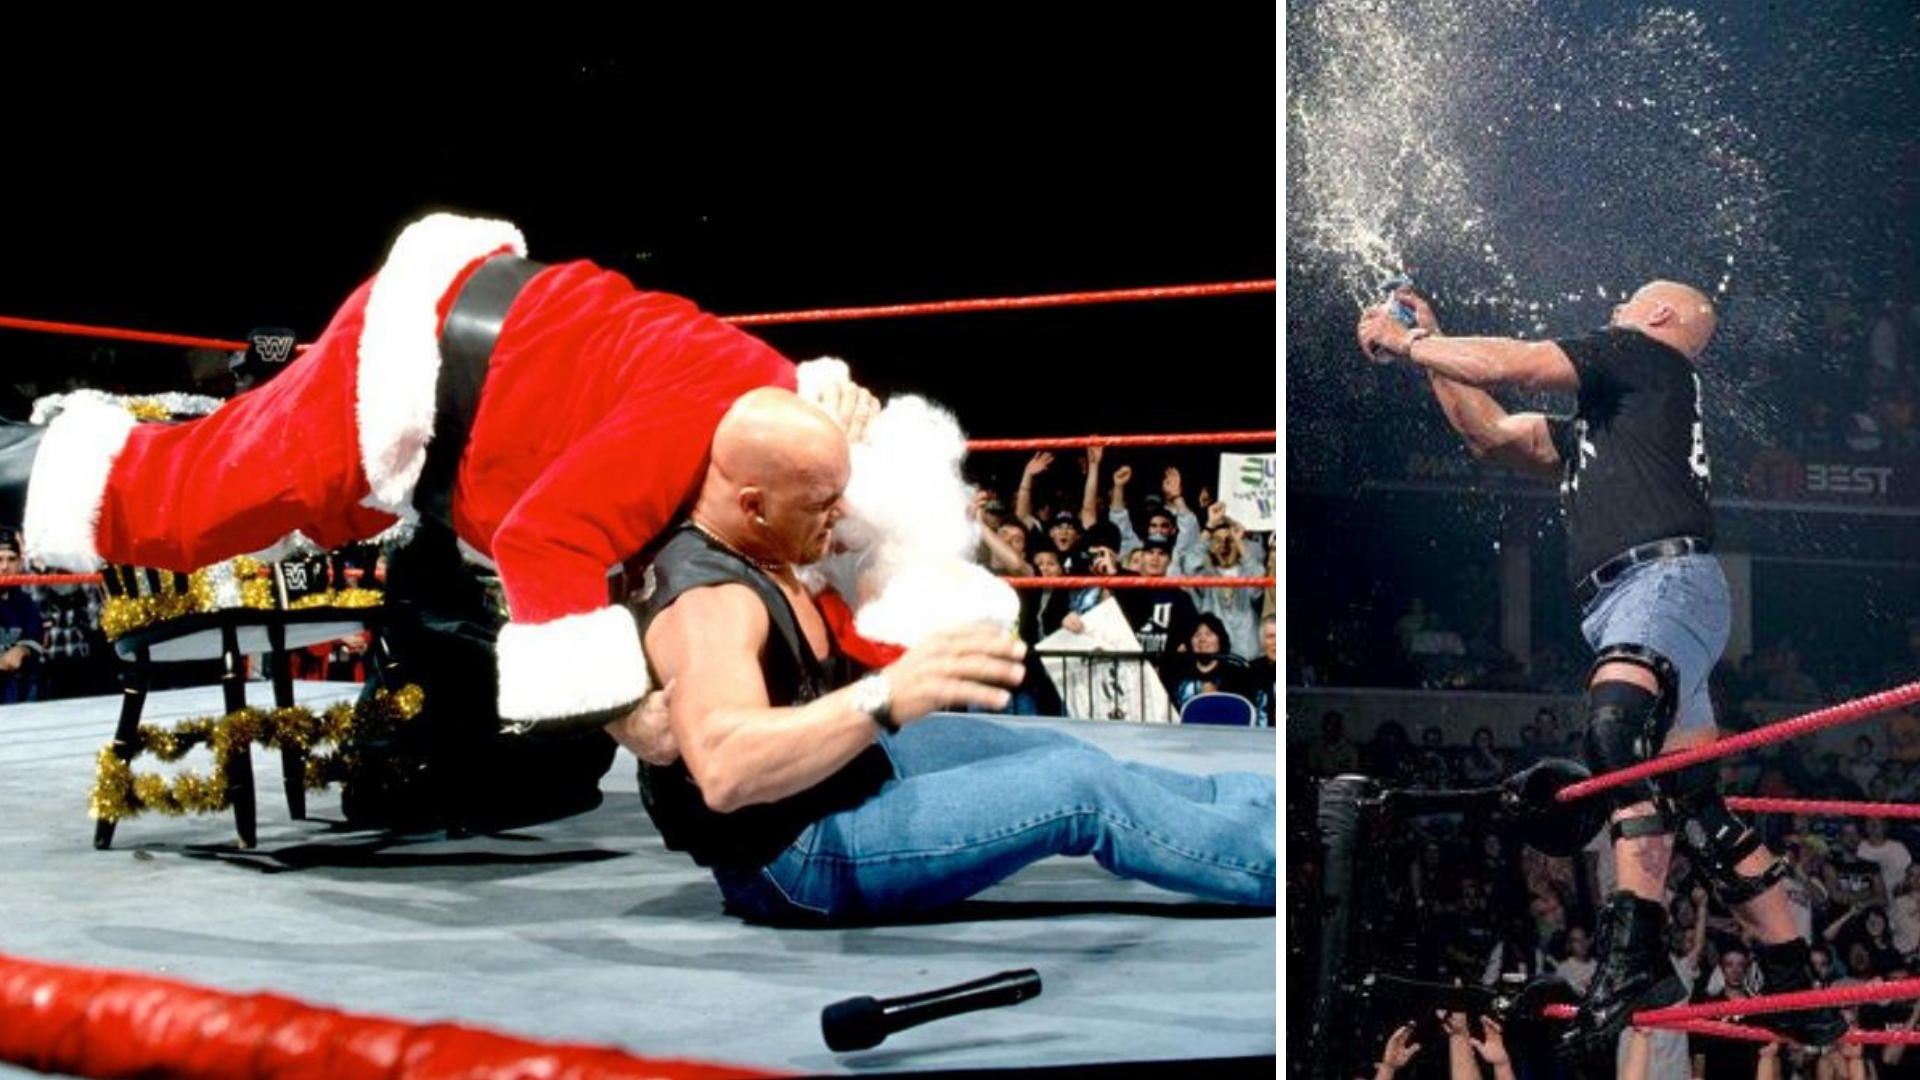 A Stone Cold Christmas.Throwback To When Stone Cold Steve Austin Hit The Stunner On